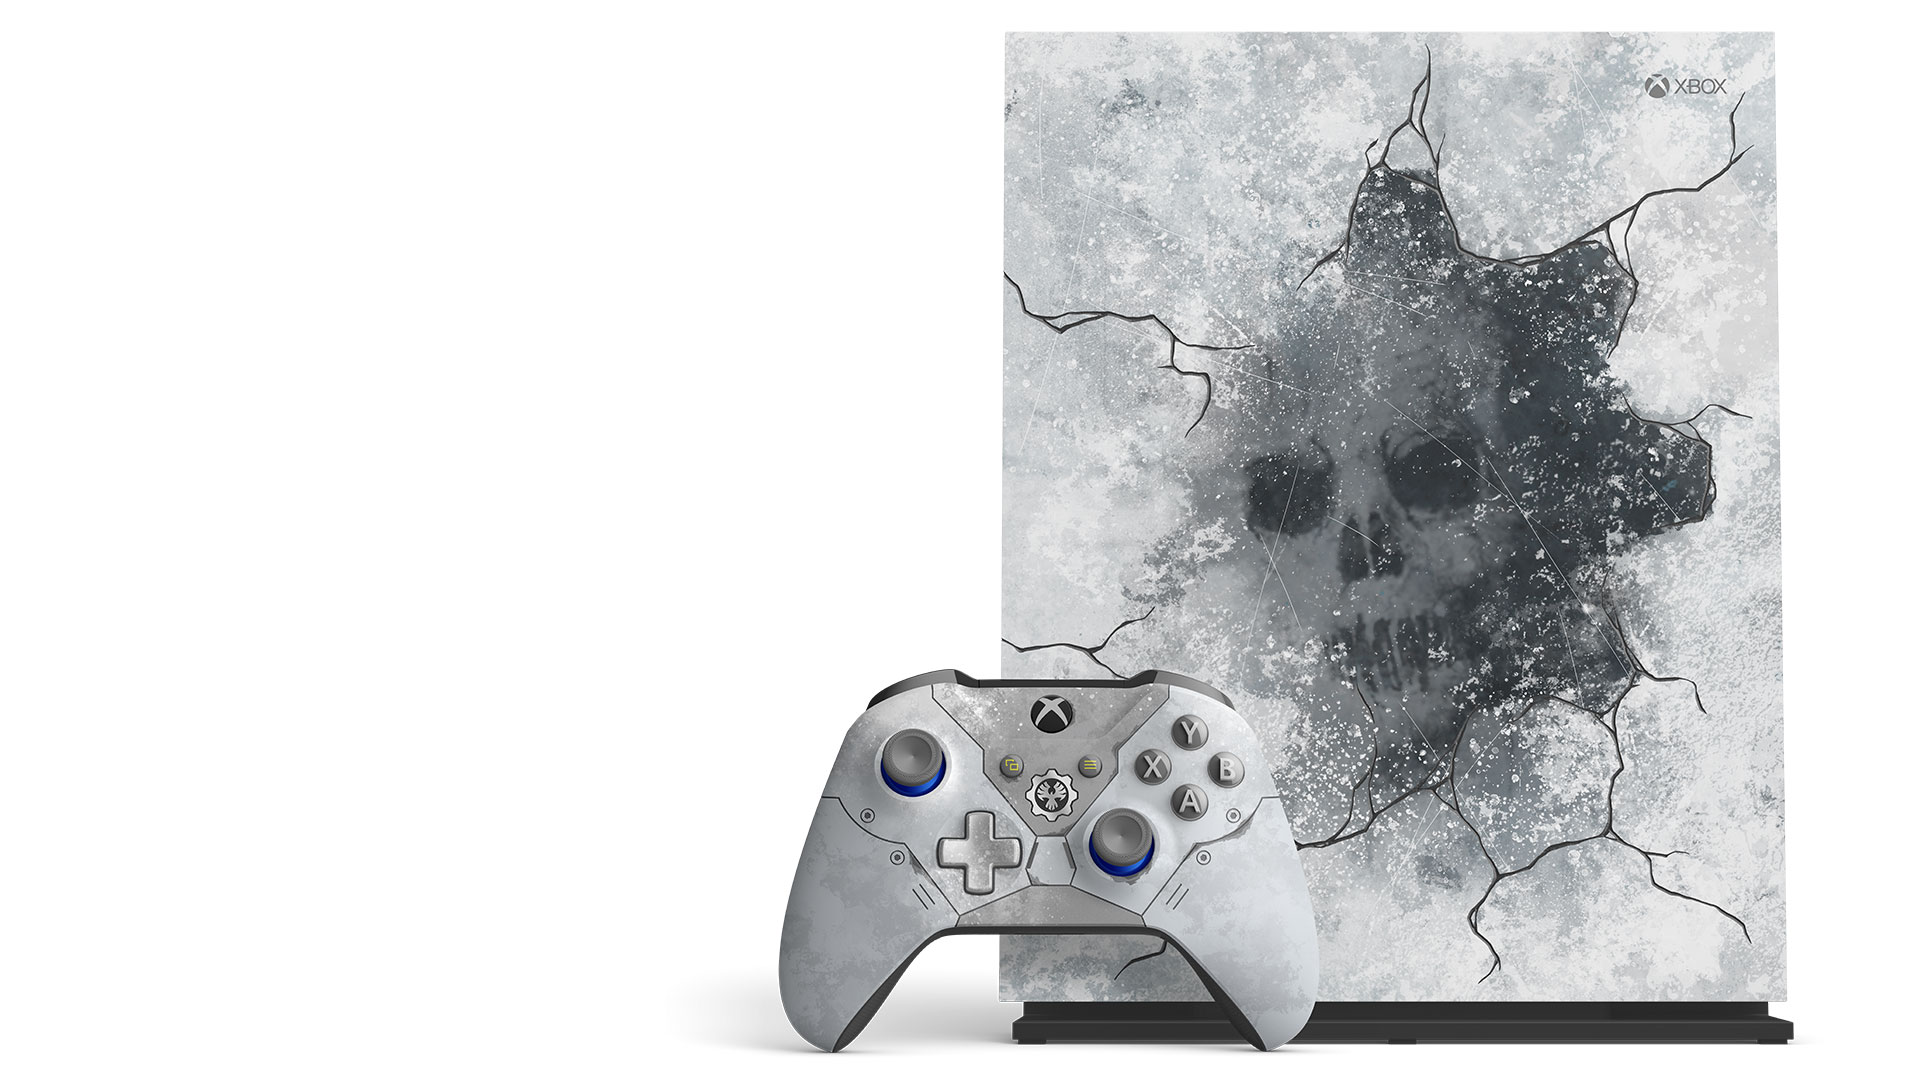 Xbox One X Gears 5 Limited Edition console on a vertical stand with the Xbox Wireless Kate Diaz Limited Edition controller